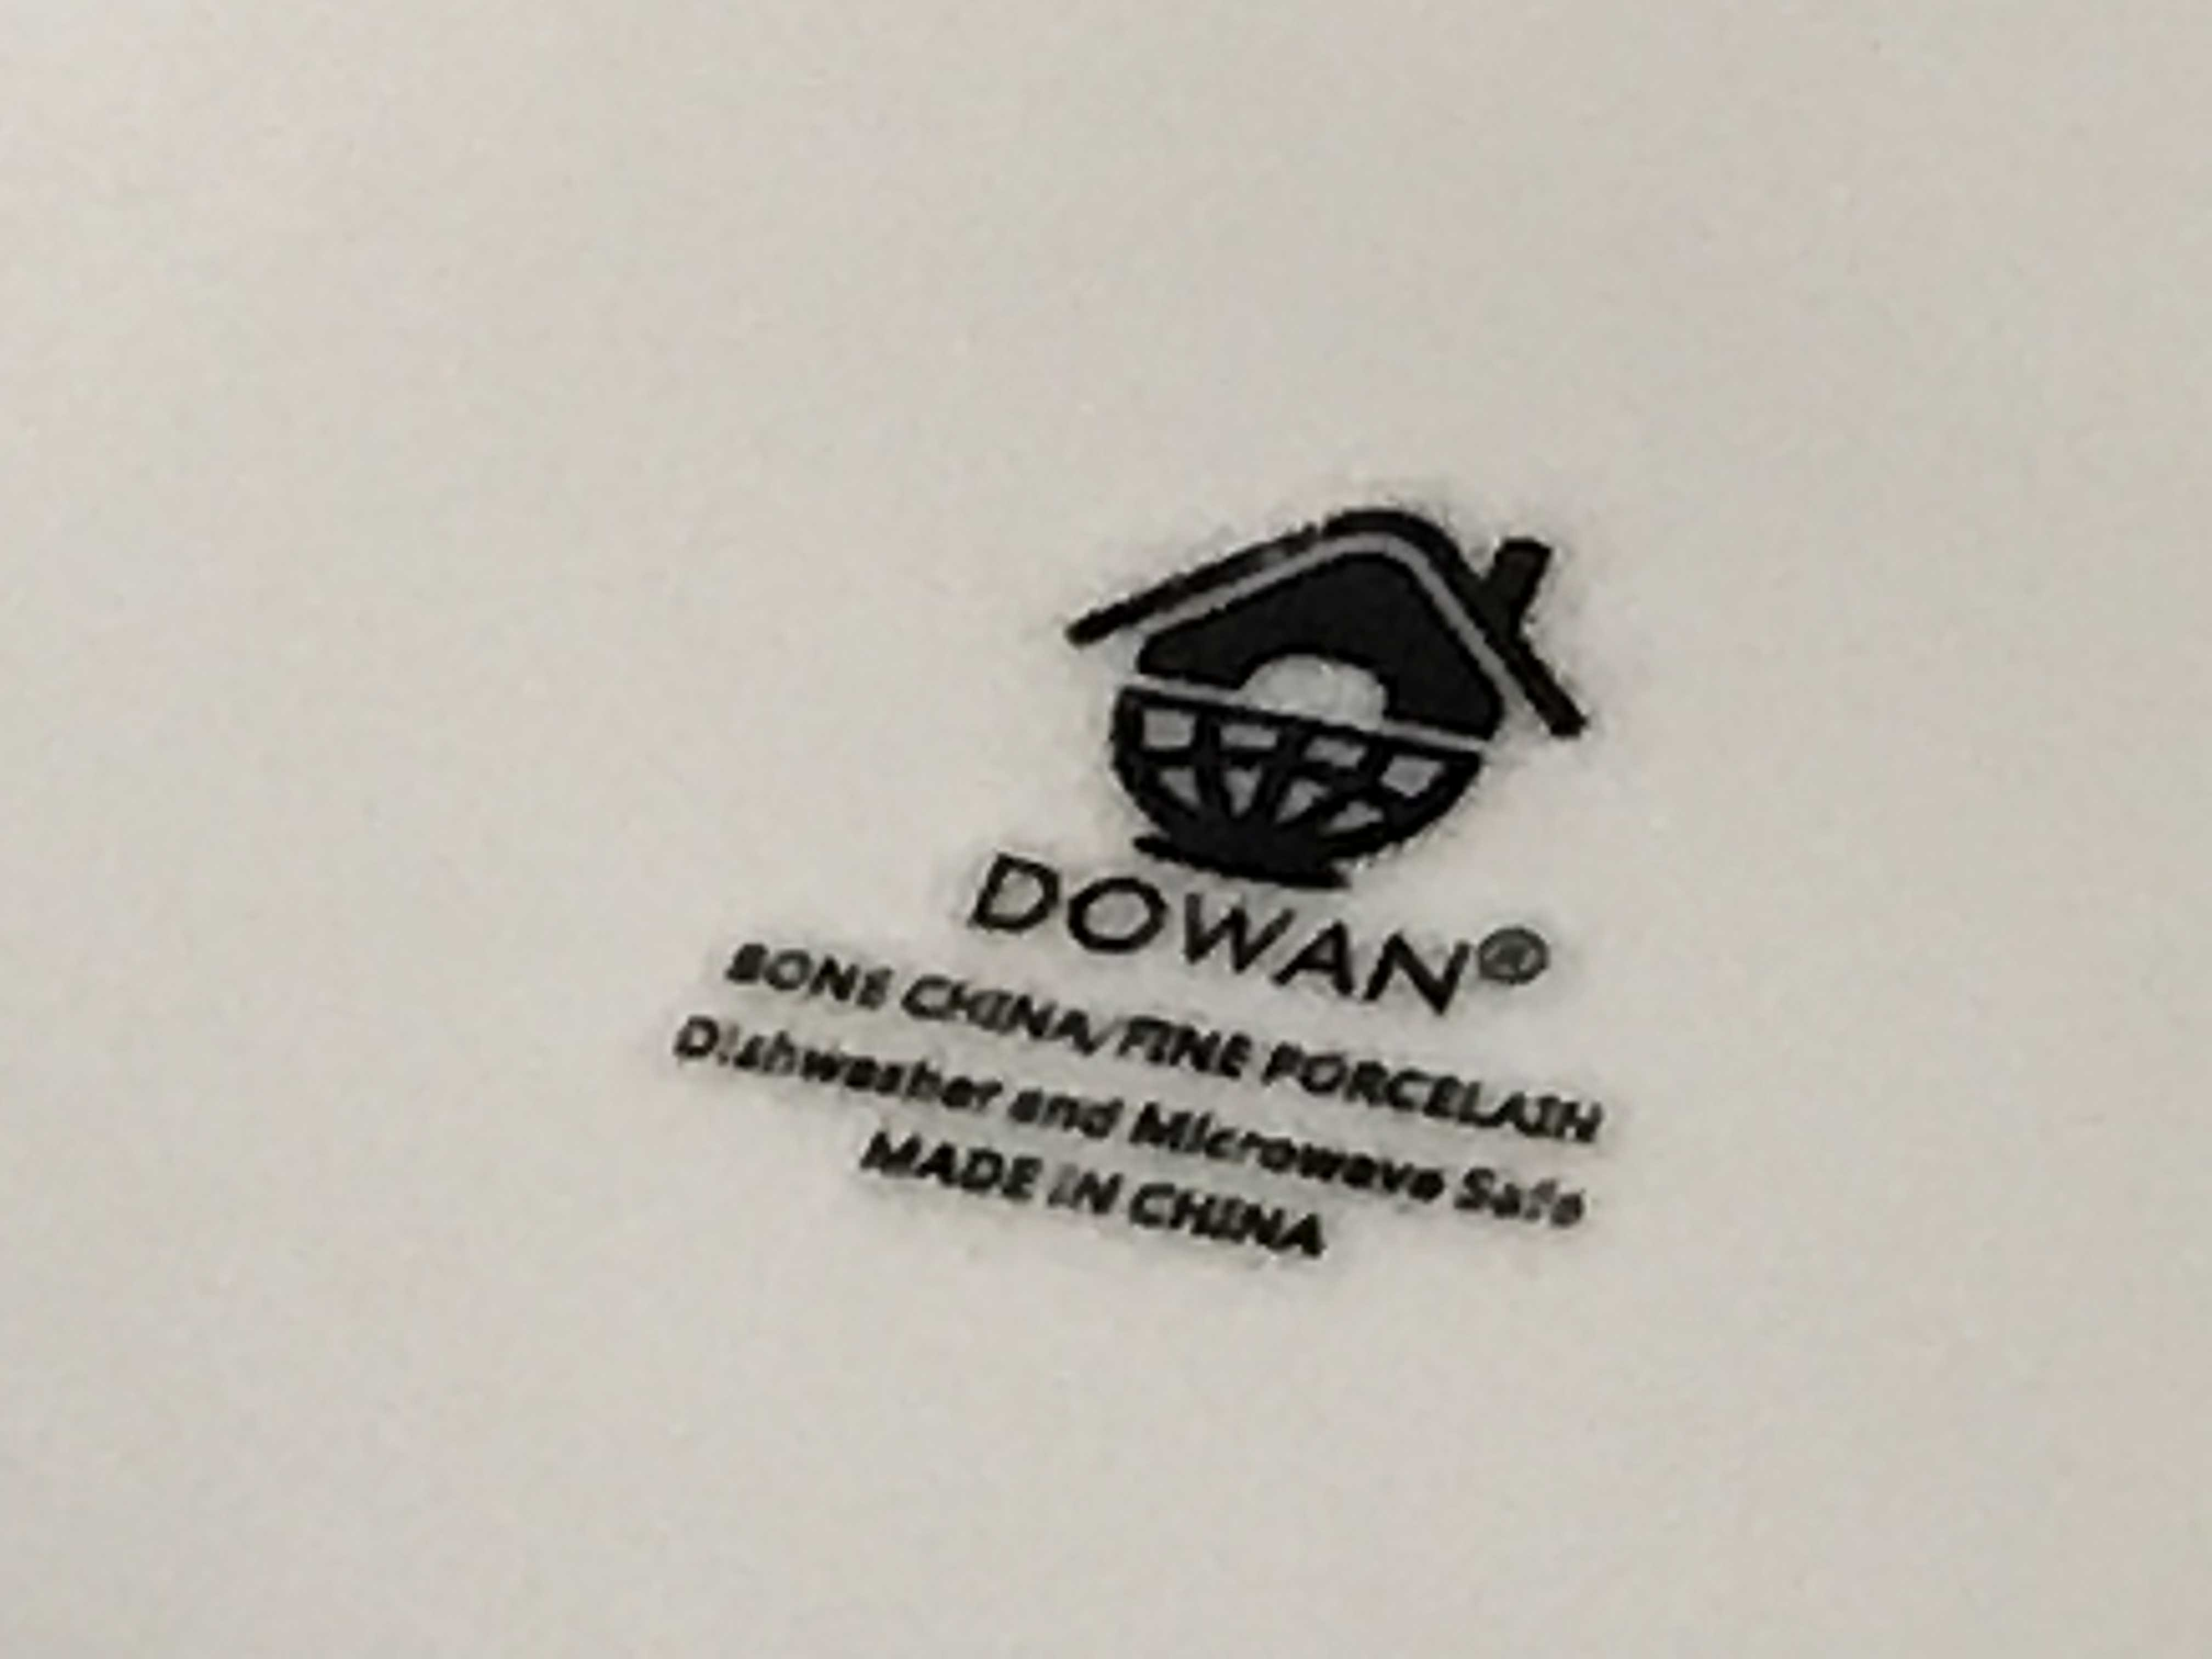 White Ceramic Bone China Fine Porcelain Dowan Bowl: 35 ppm Lead + 17 ppm Cadmium (safe by all standards).